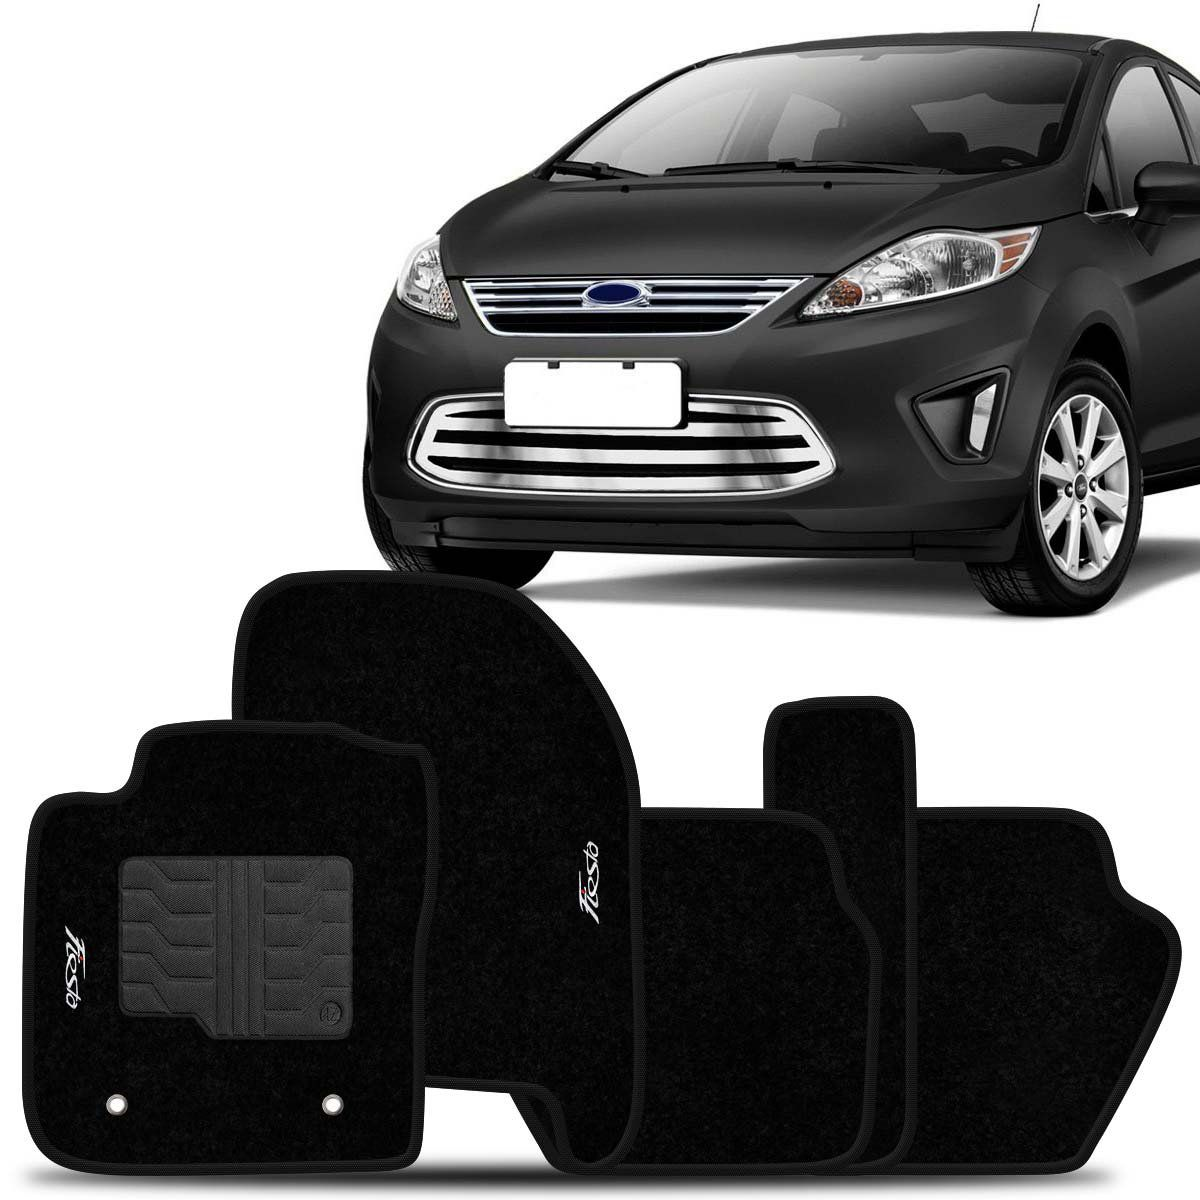 Tapete Carpete New Fiesta 2010 2011 2012 2013 Preto